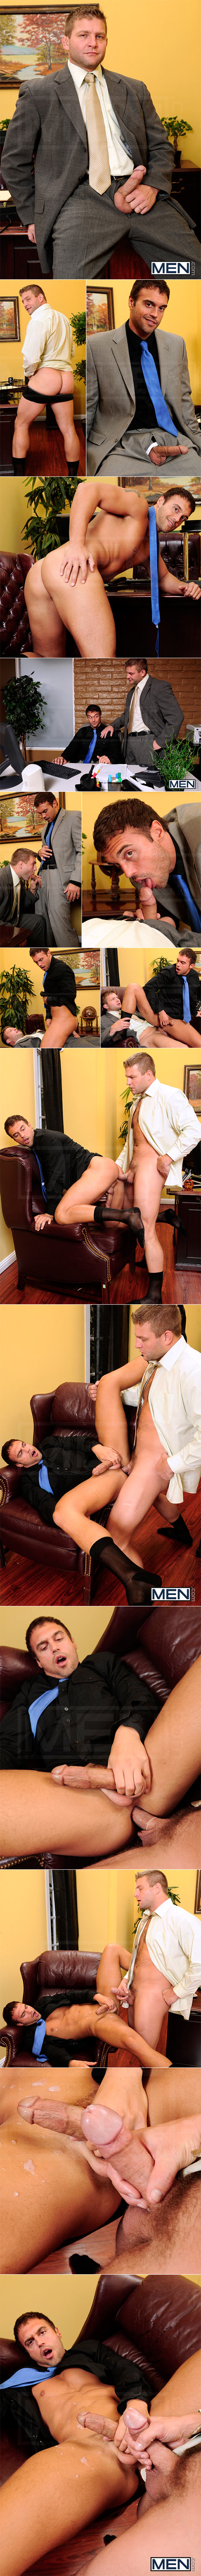 """Men.com: Colby Jansen fucks Rocco Reed in """"Touchy Boss"""""""